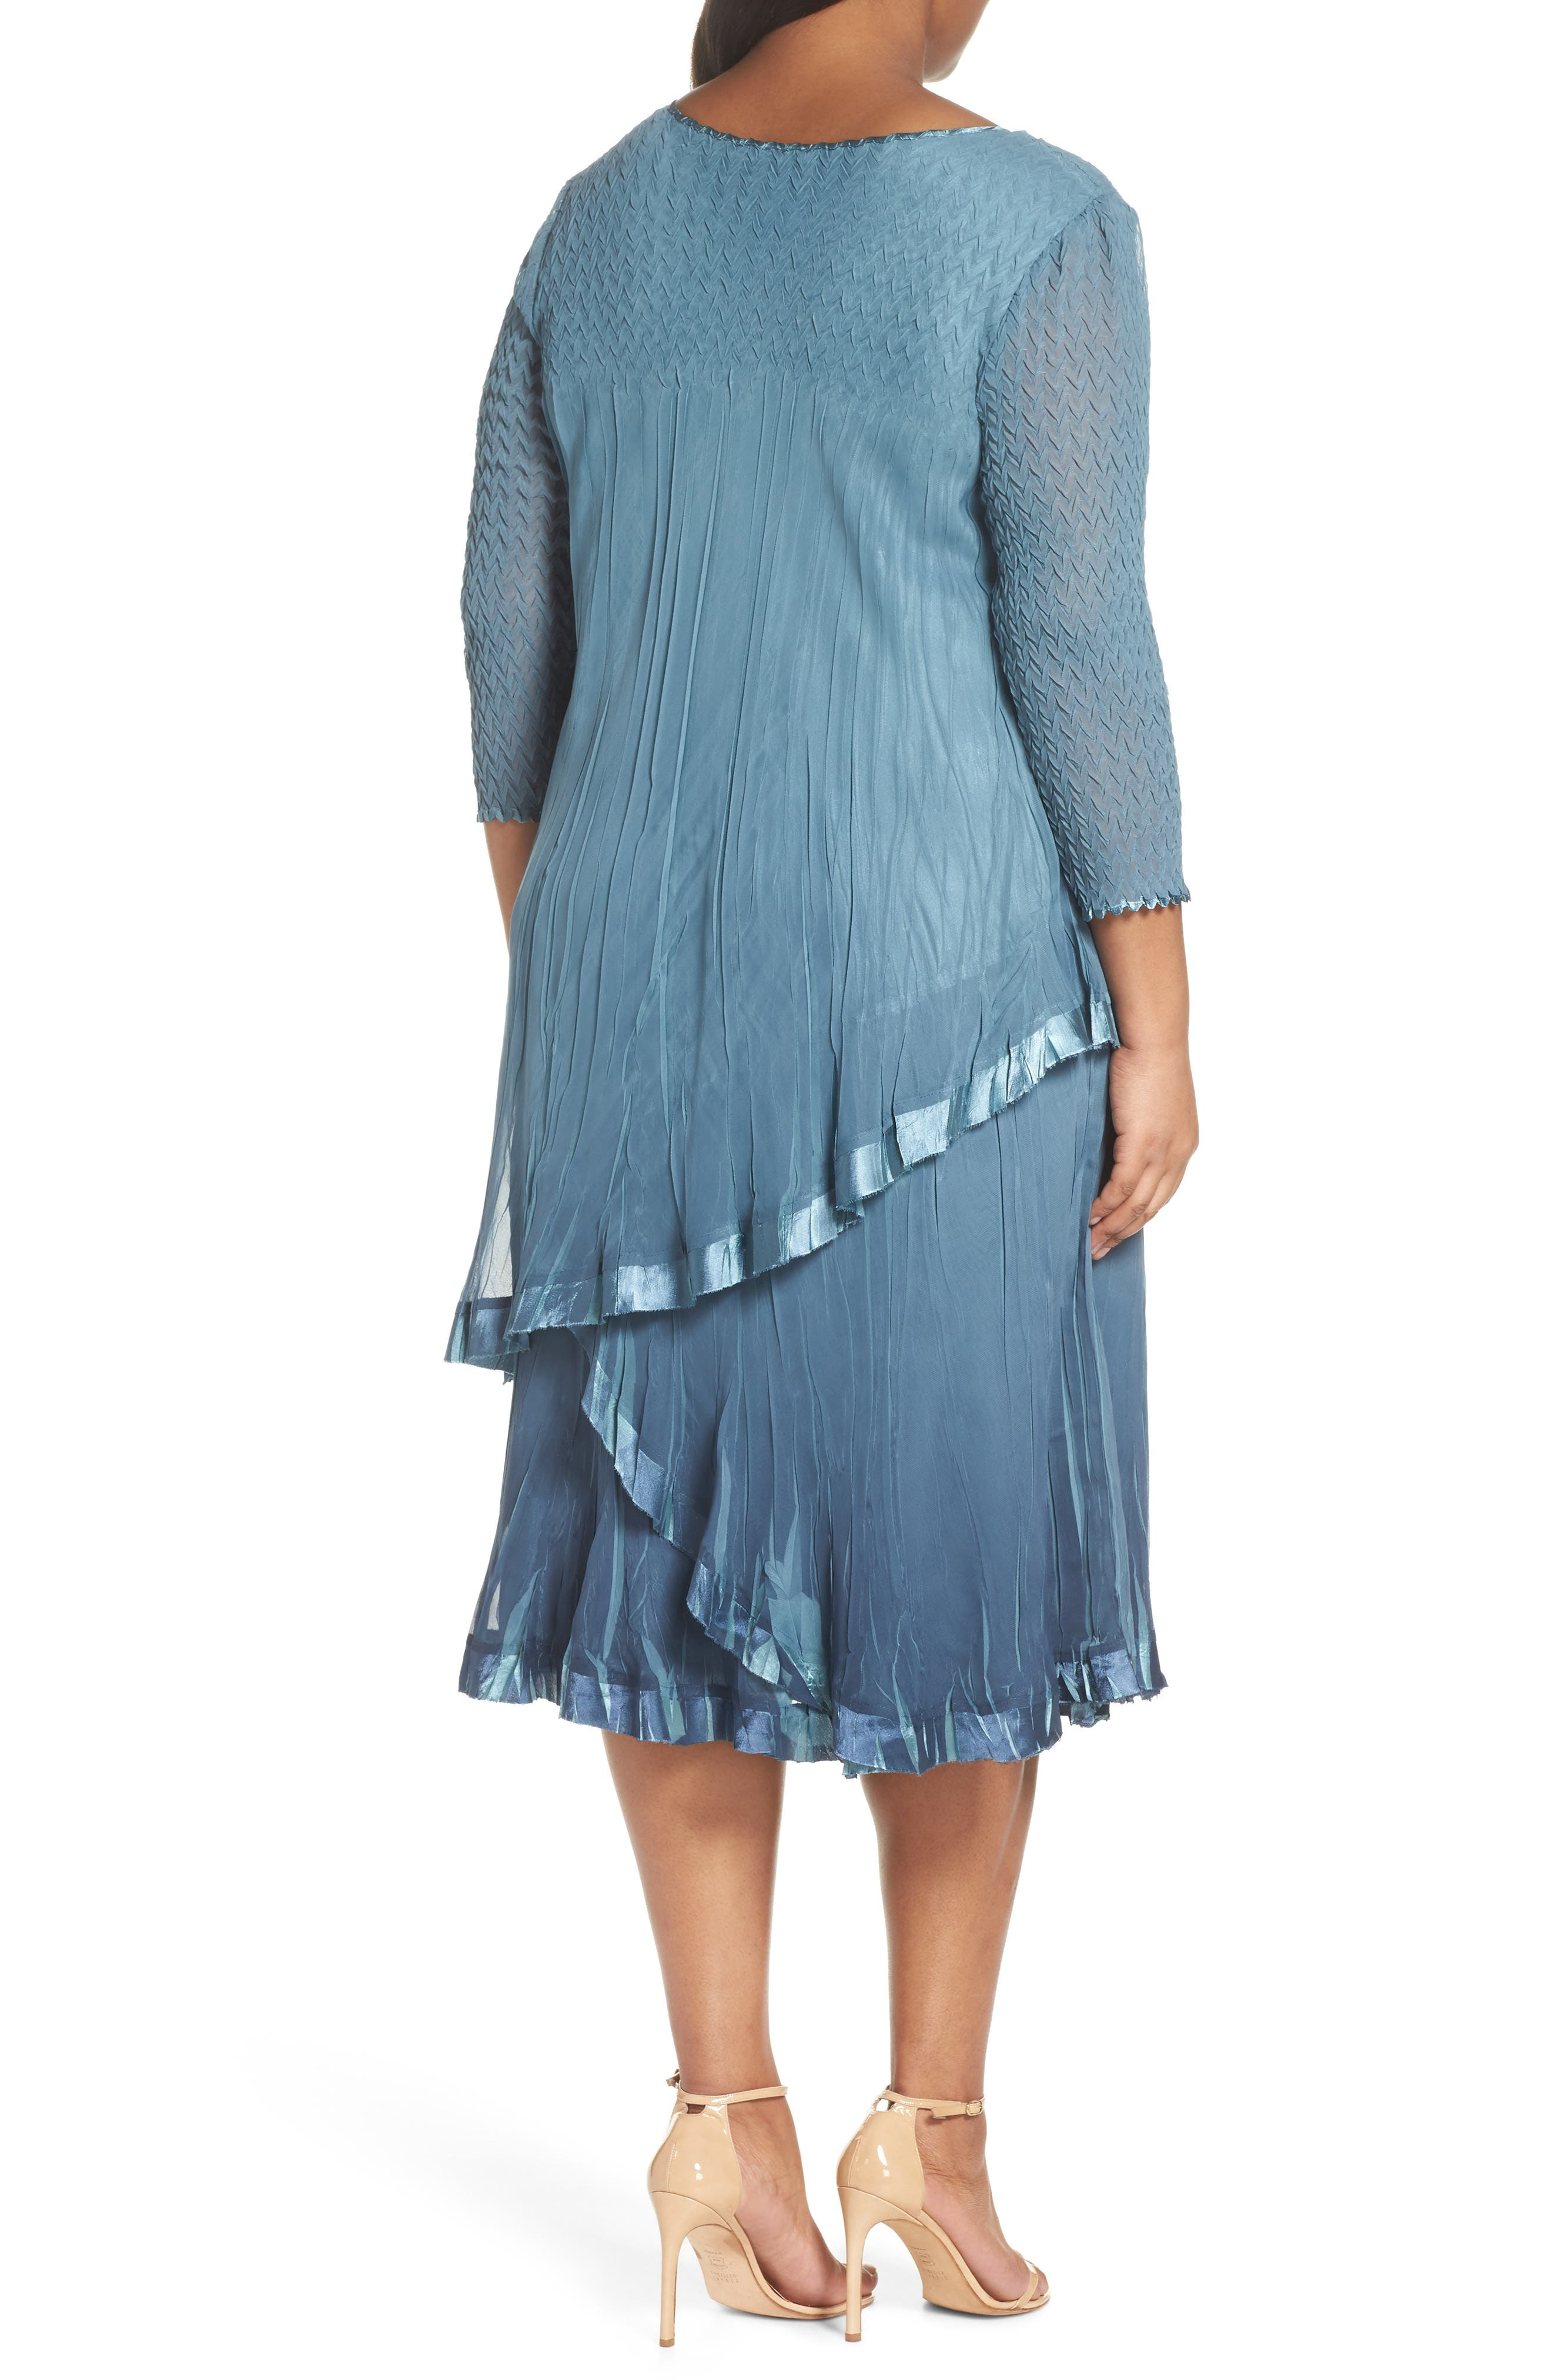 Bead Trim Tiered Chiffon Dress,                             Alternate thumbnail 2, color,                             Silver Blue Night Ombre